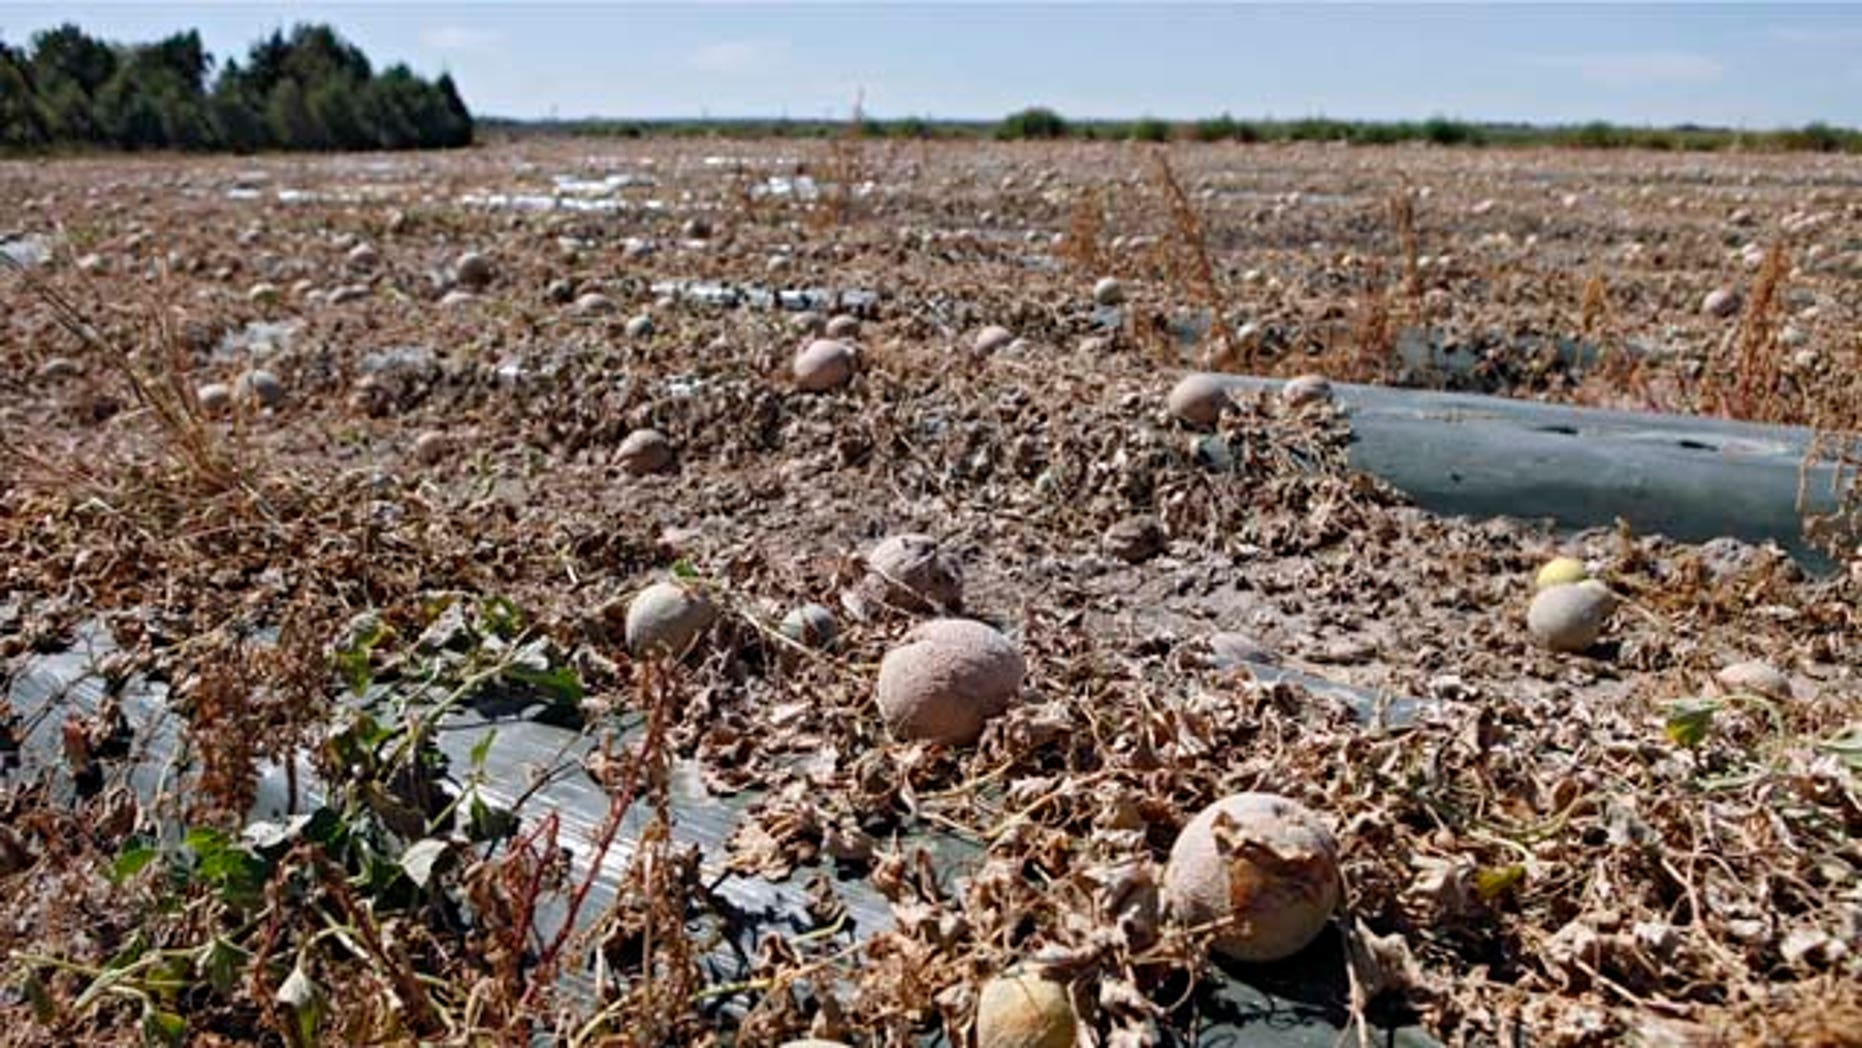 Cantaloupes rot in the afternoon heat on a field on the Jensen Farms near Holly, Colo., on Wednesday, Sept. 28, 2011. Federal health officials said Wednesday more illnesses and possibly more deaths may be linked to an outbreak of listeria in cantaloupe in coming weeks. (AP Photo/Ed Andrieski)